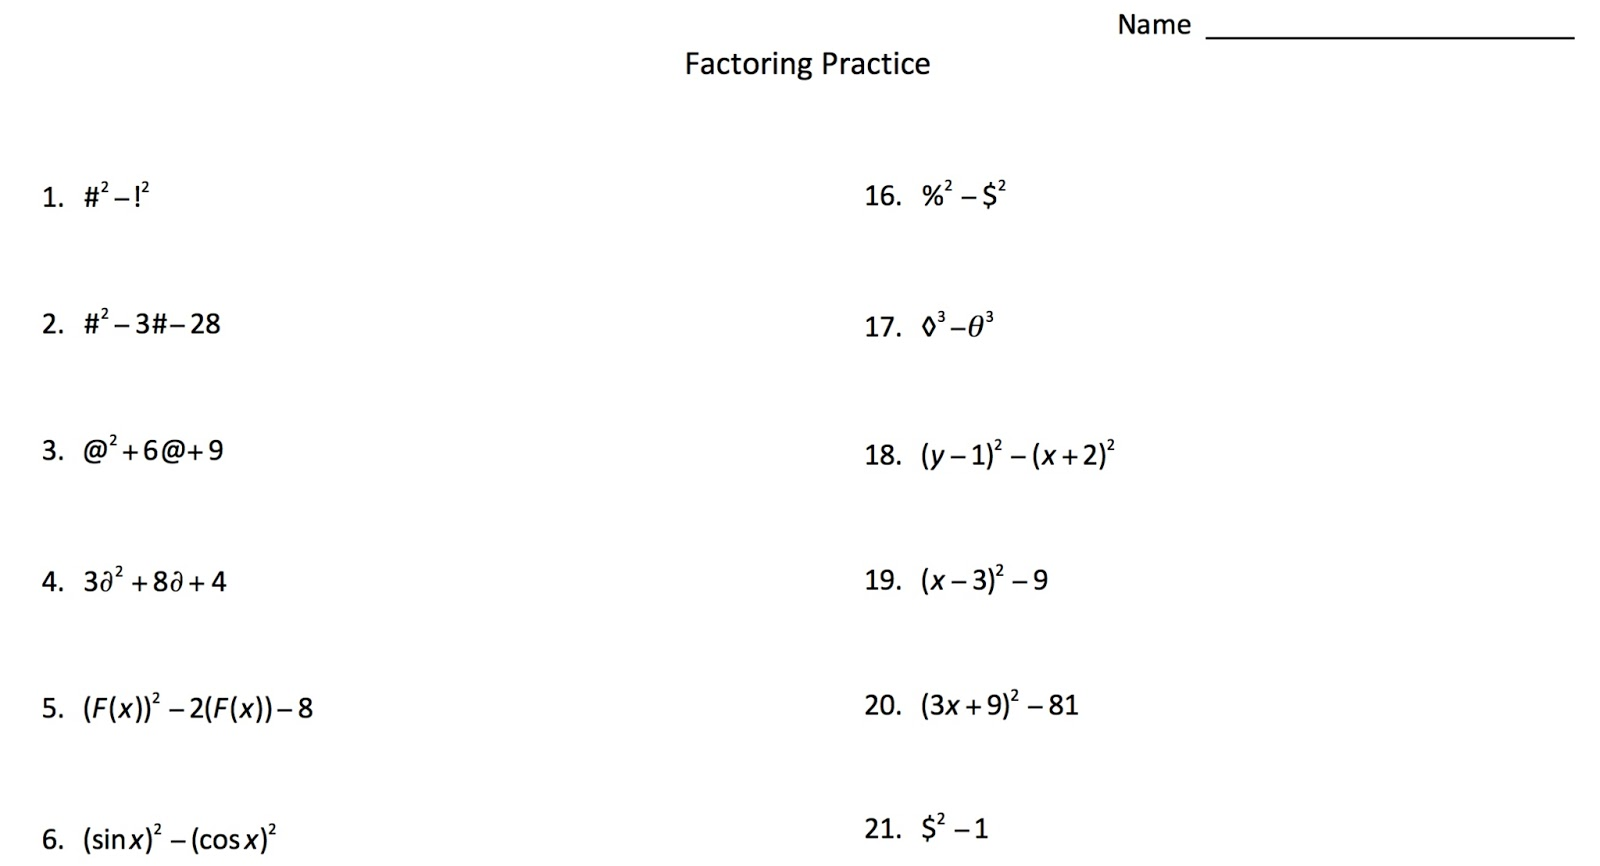 Worksheets Factoring Expressions Worksheet factoring with symbols mrs e teaches math using instead of numbers to help students see the patterns